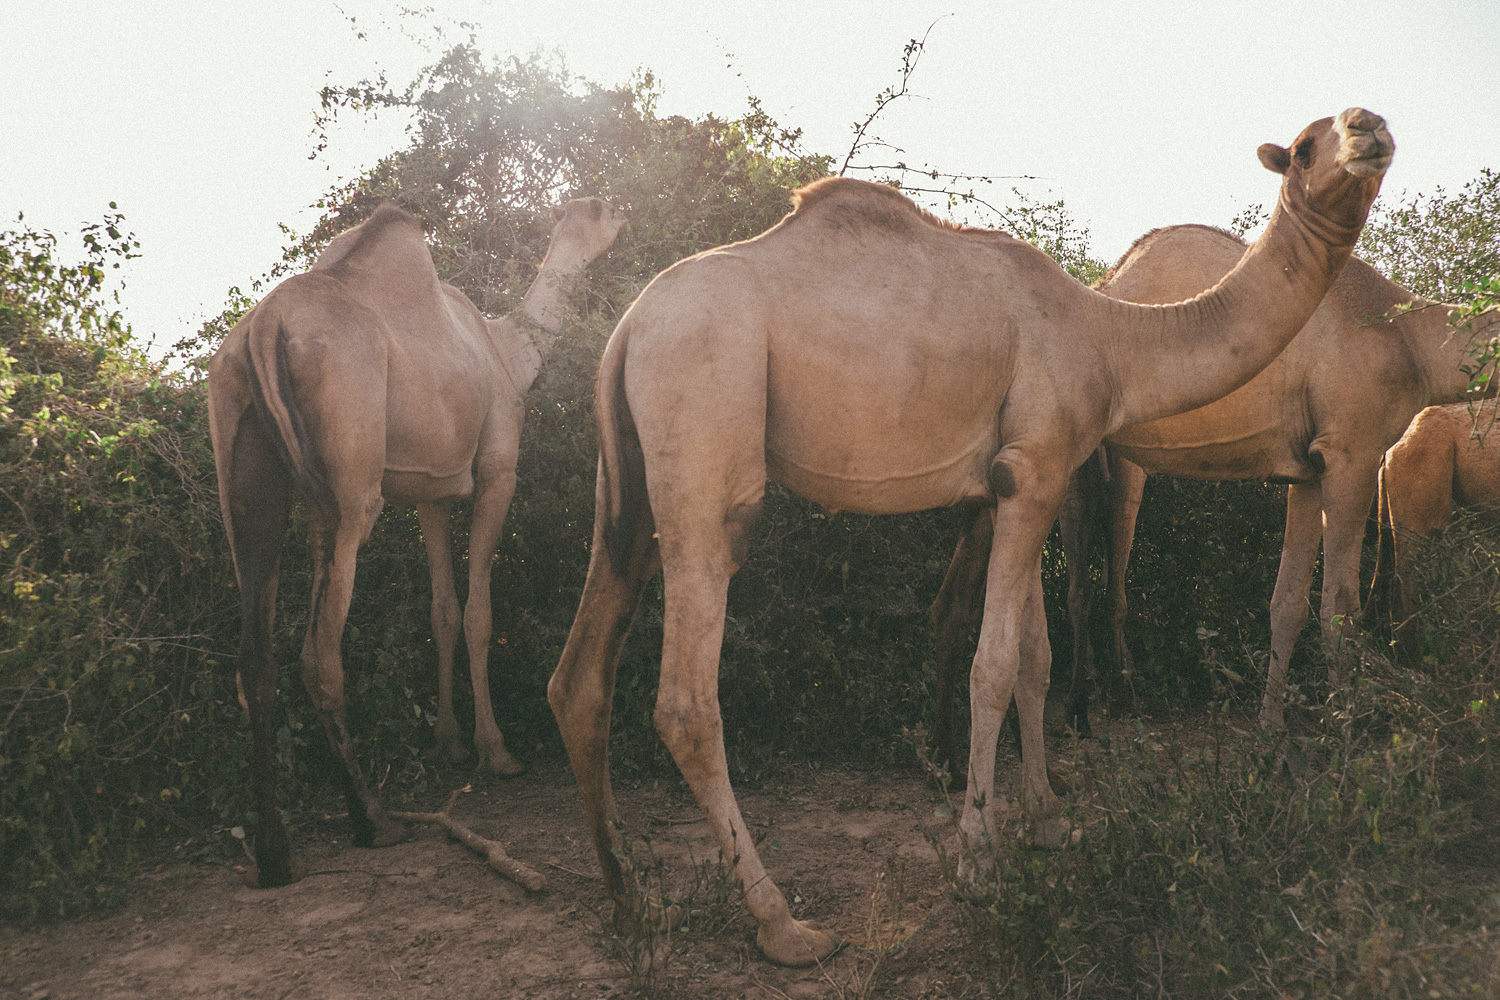 ^ Then out of nowhere, two young boys and their herd of 50+ camels showed up.